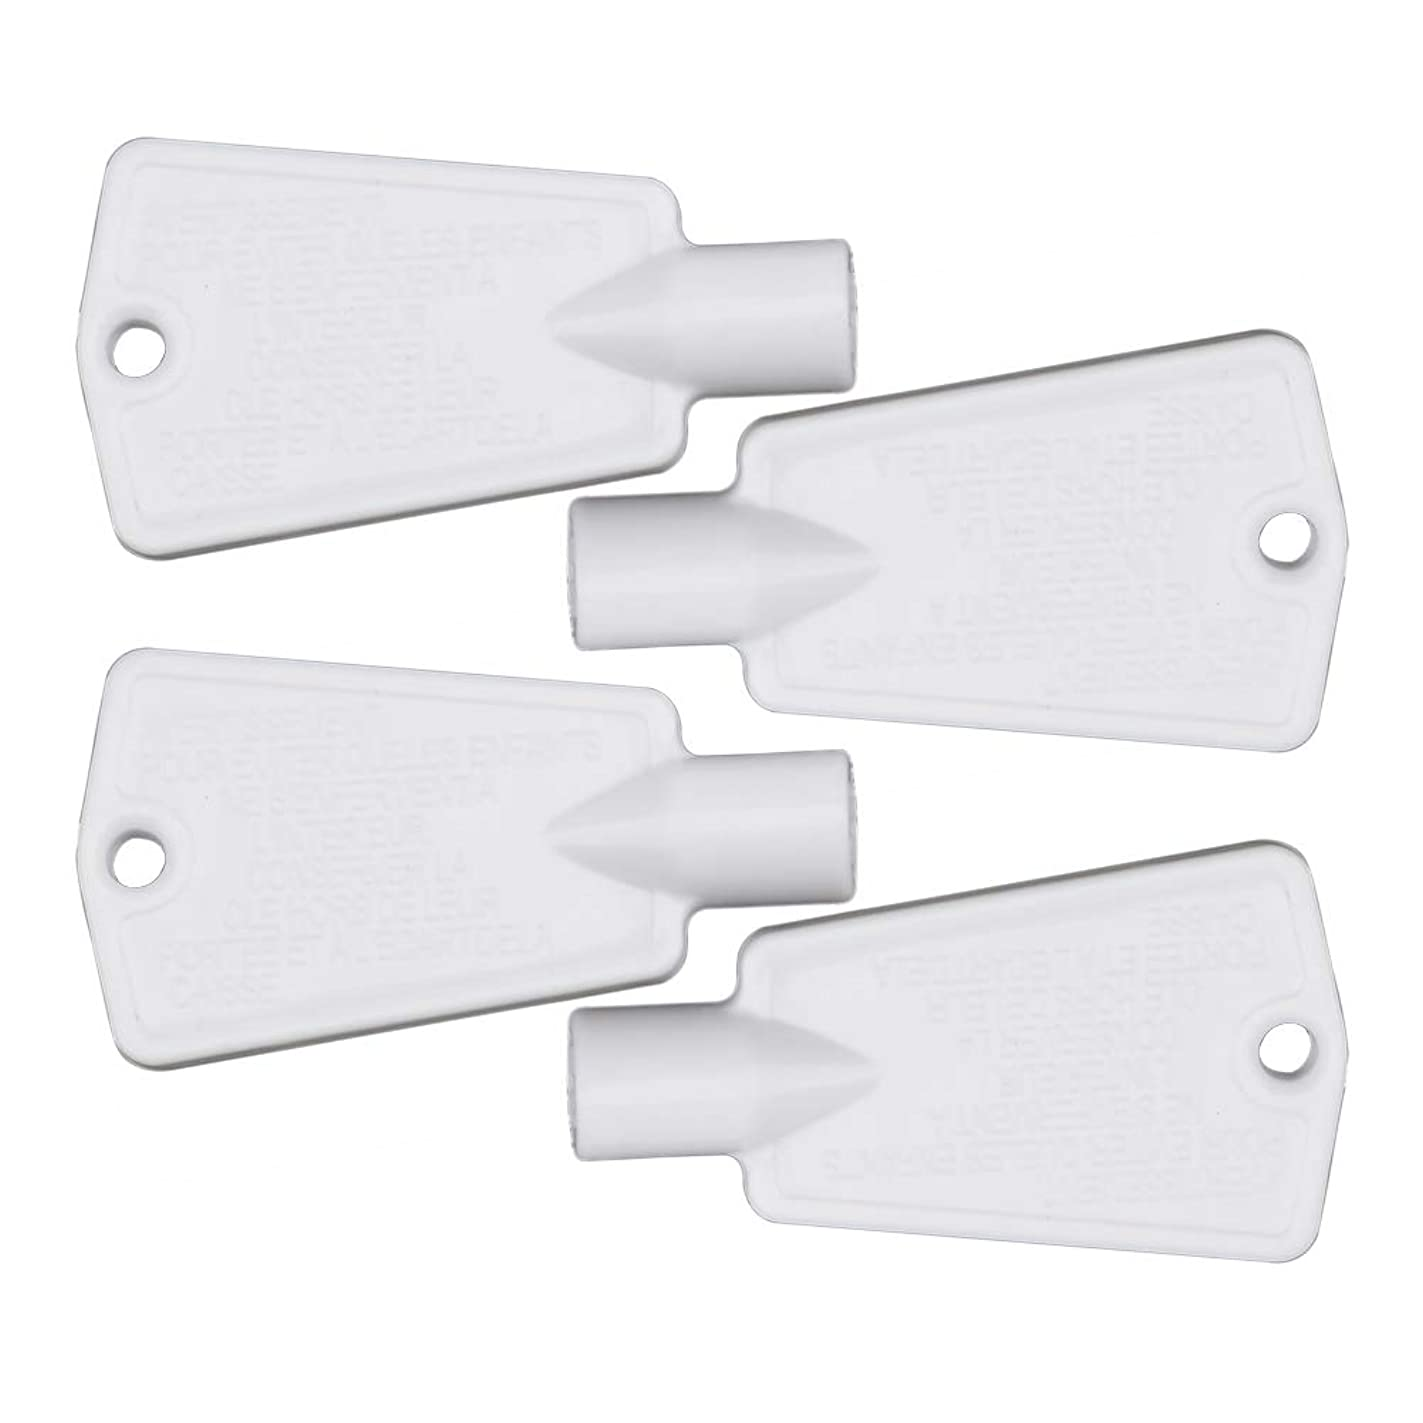 297147700 Freezer Door Key Replacement for Electrolux Frigidaire Kenmore Refrigerator Replaces AP4301346 PS1991481 by AUKO (4 Packs)